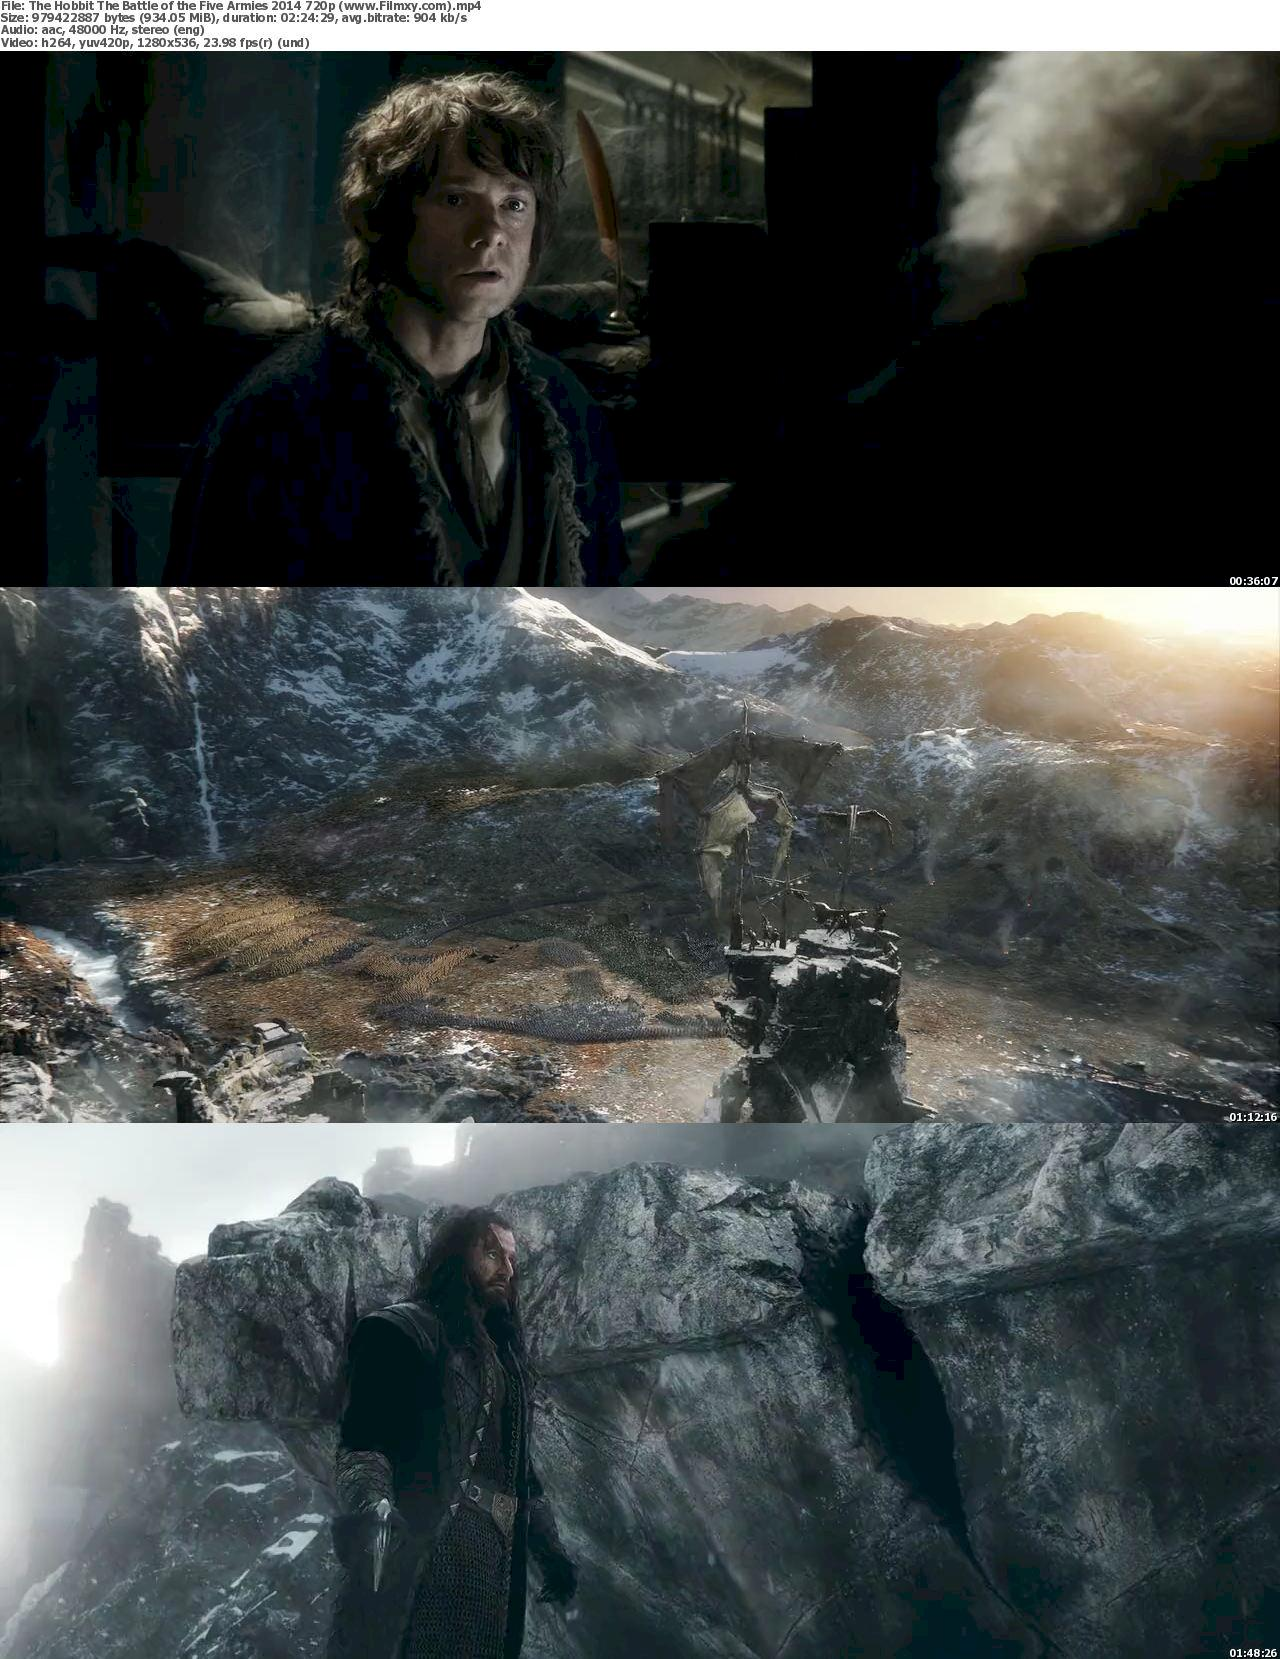 The Hobbit: Battle Of The Five Armies (2014) 720p & 1080p Bluray Free Download 720p Screenshot